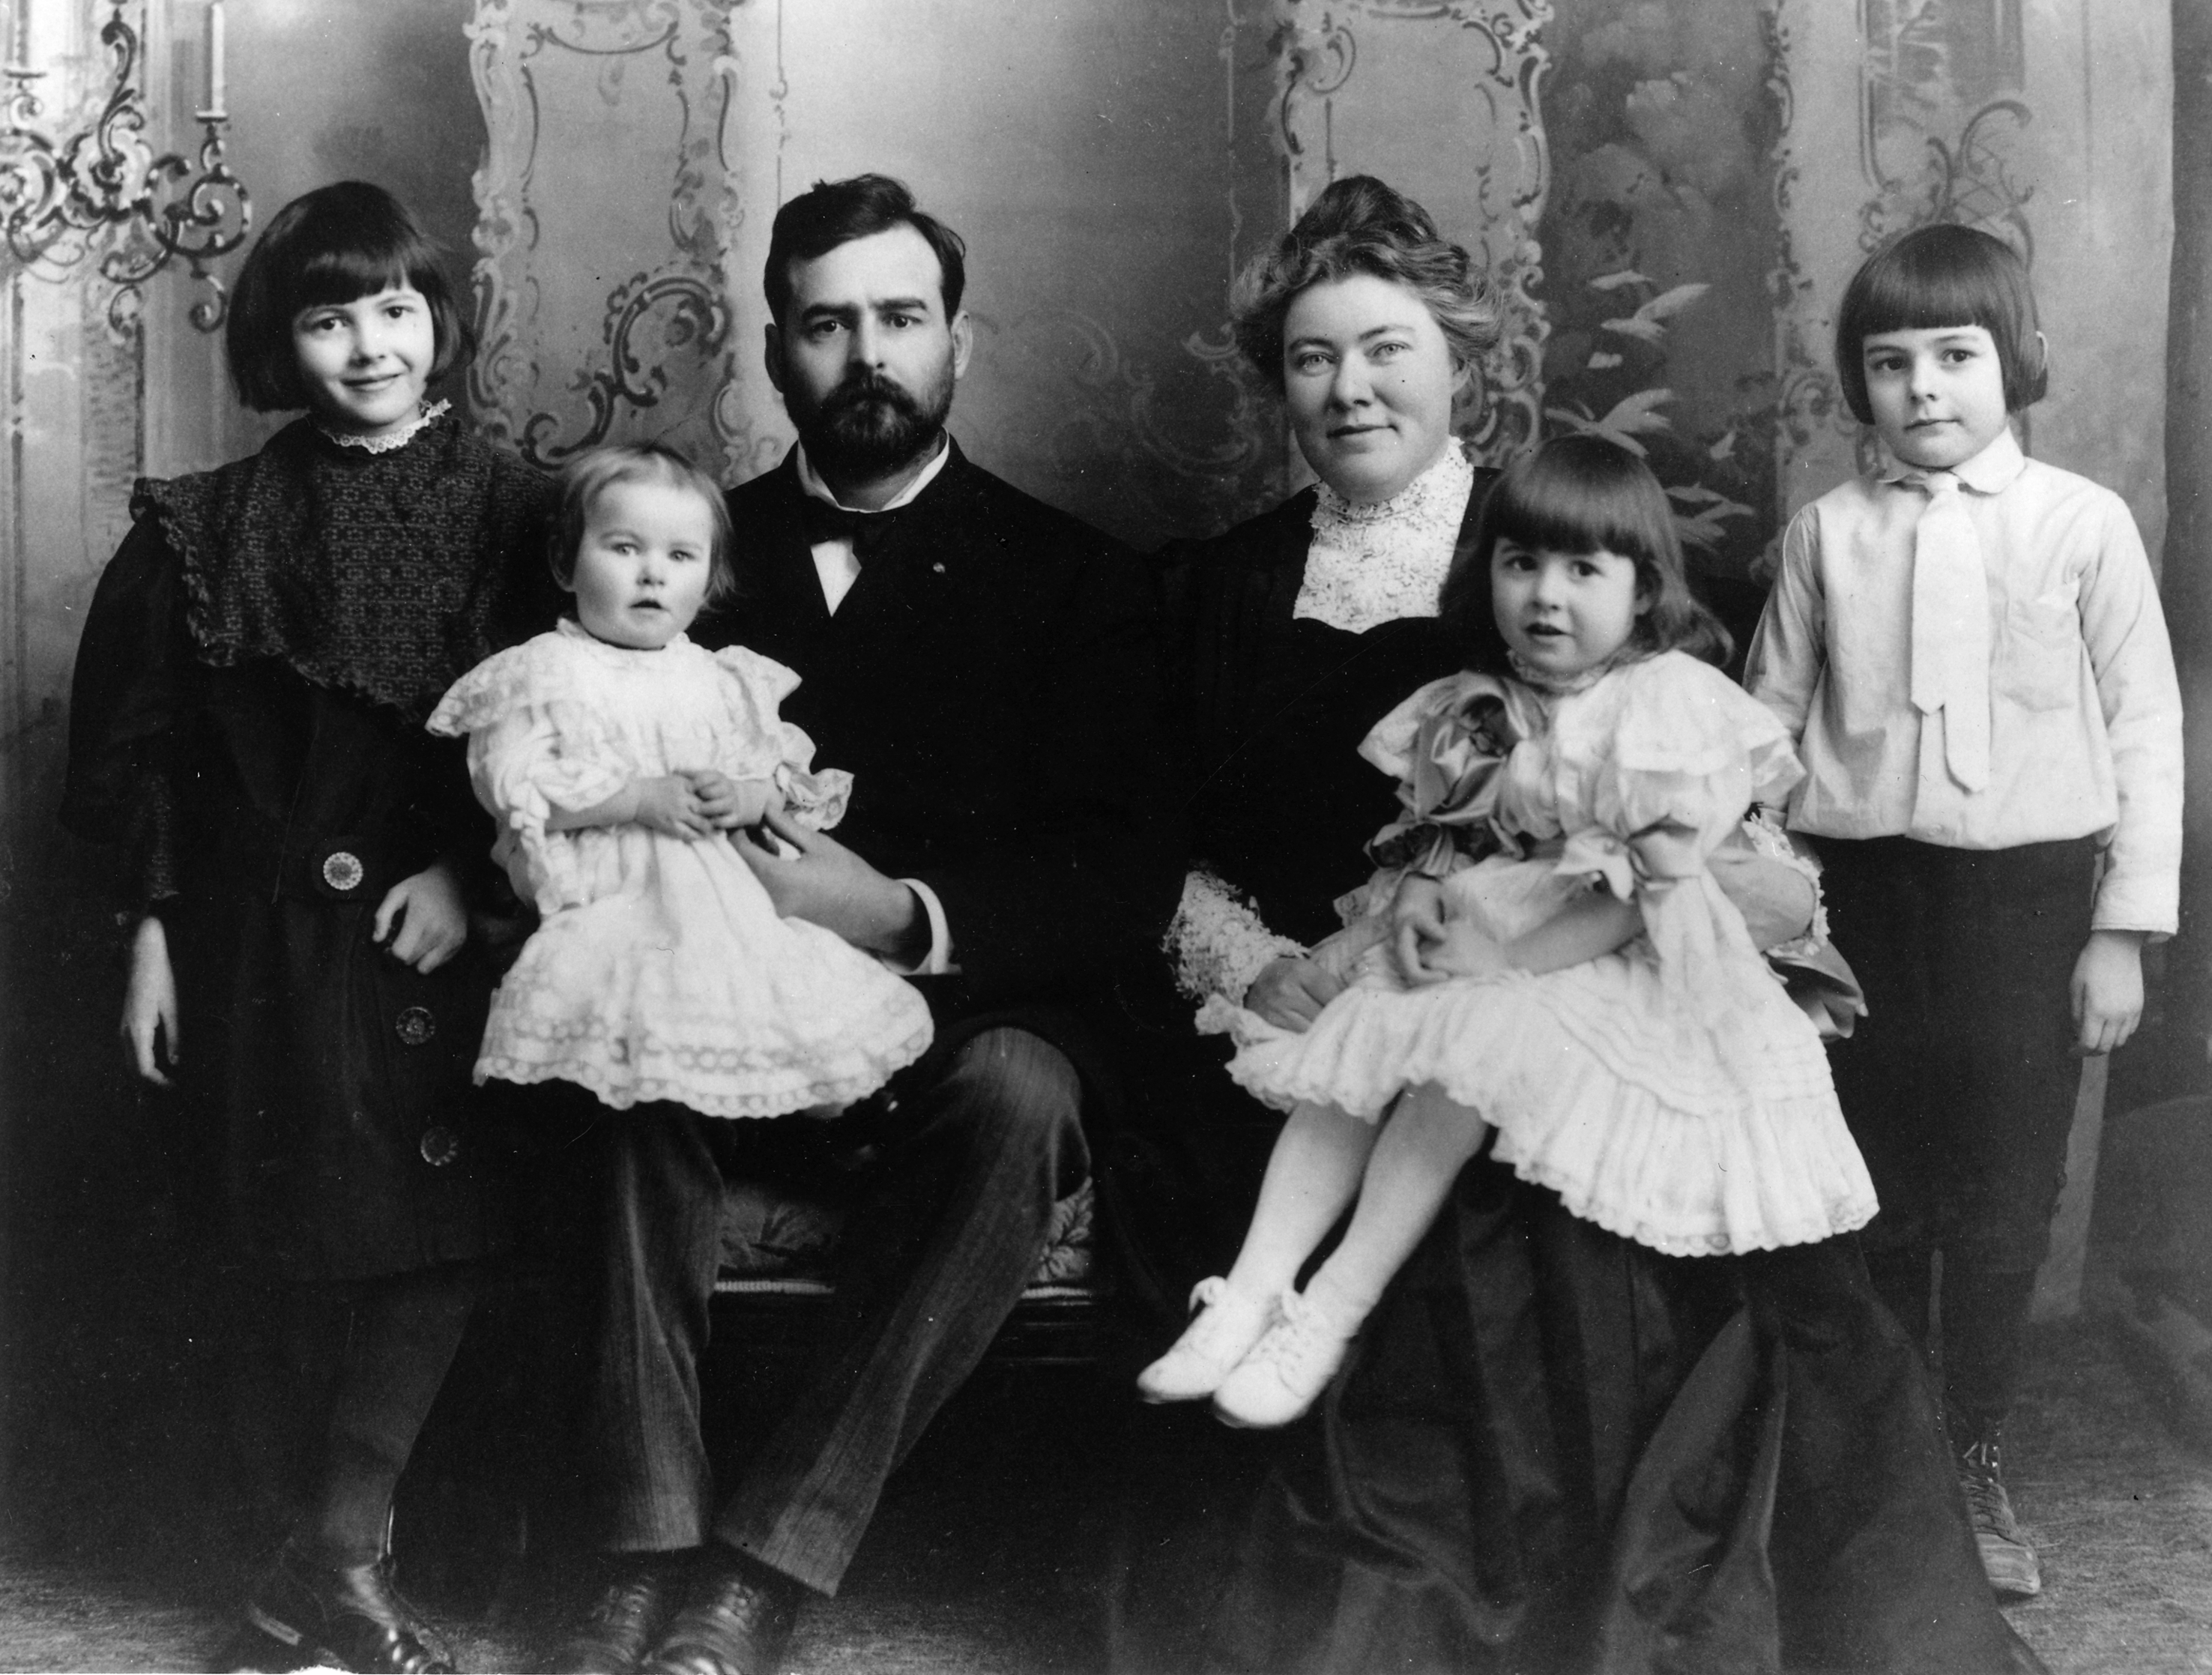 File:Ernest Hemingway with Family, 1905.png - Wikimedia